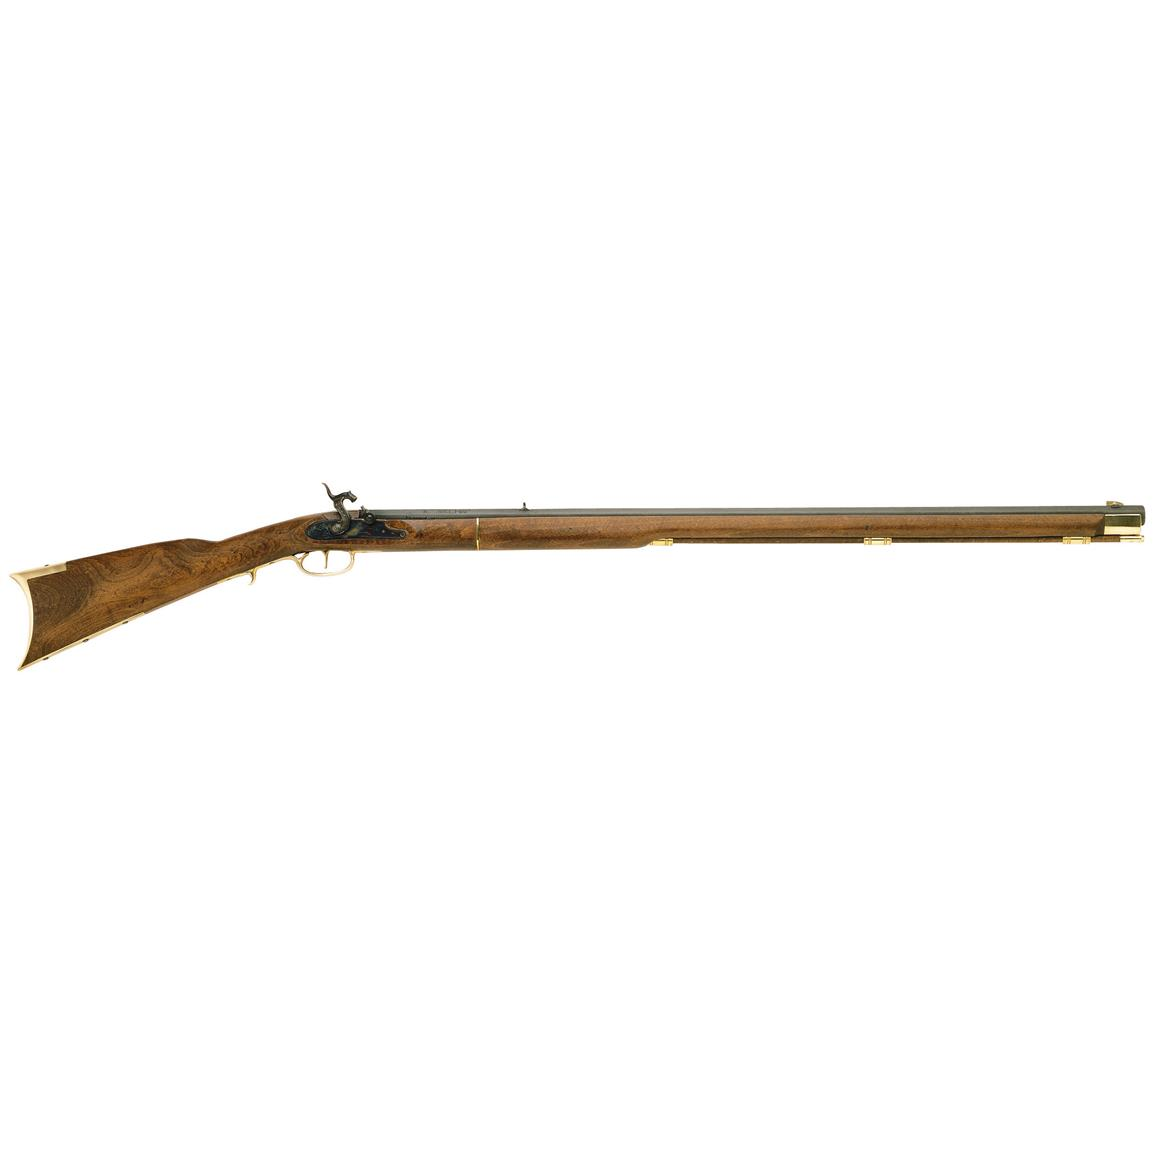 Traditions™ Kentucky .50 Cal. Black Powder Percussion Rifle